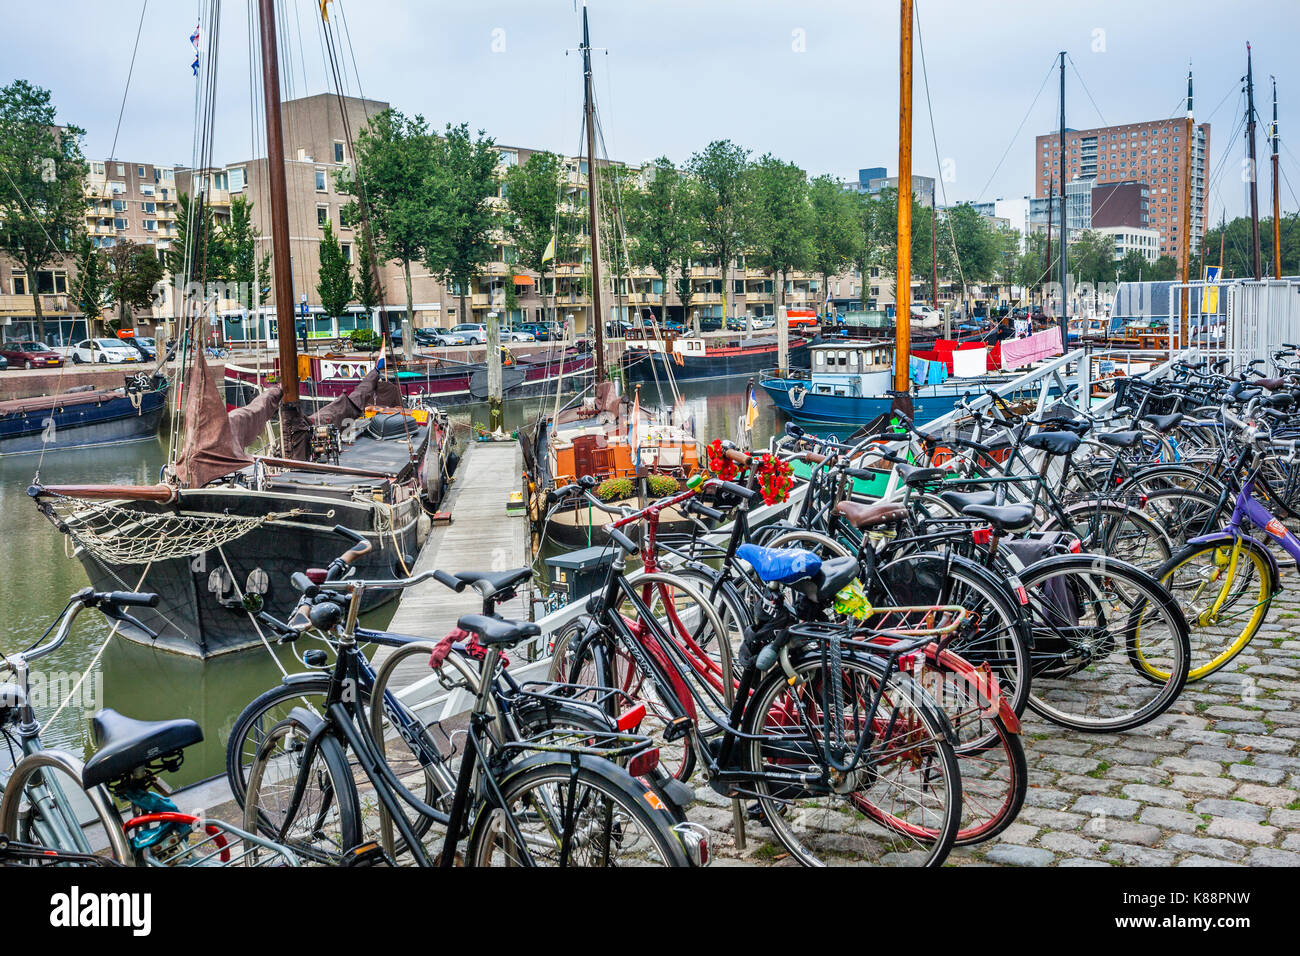 Netherlands, South Holland, Rotterdam, Maritime District, bicycle parking at Haringvliet, part of Rotterdams old - Stock Image